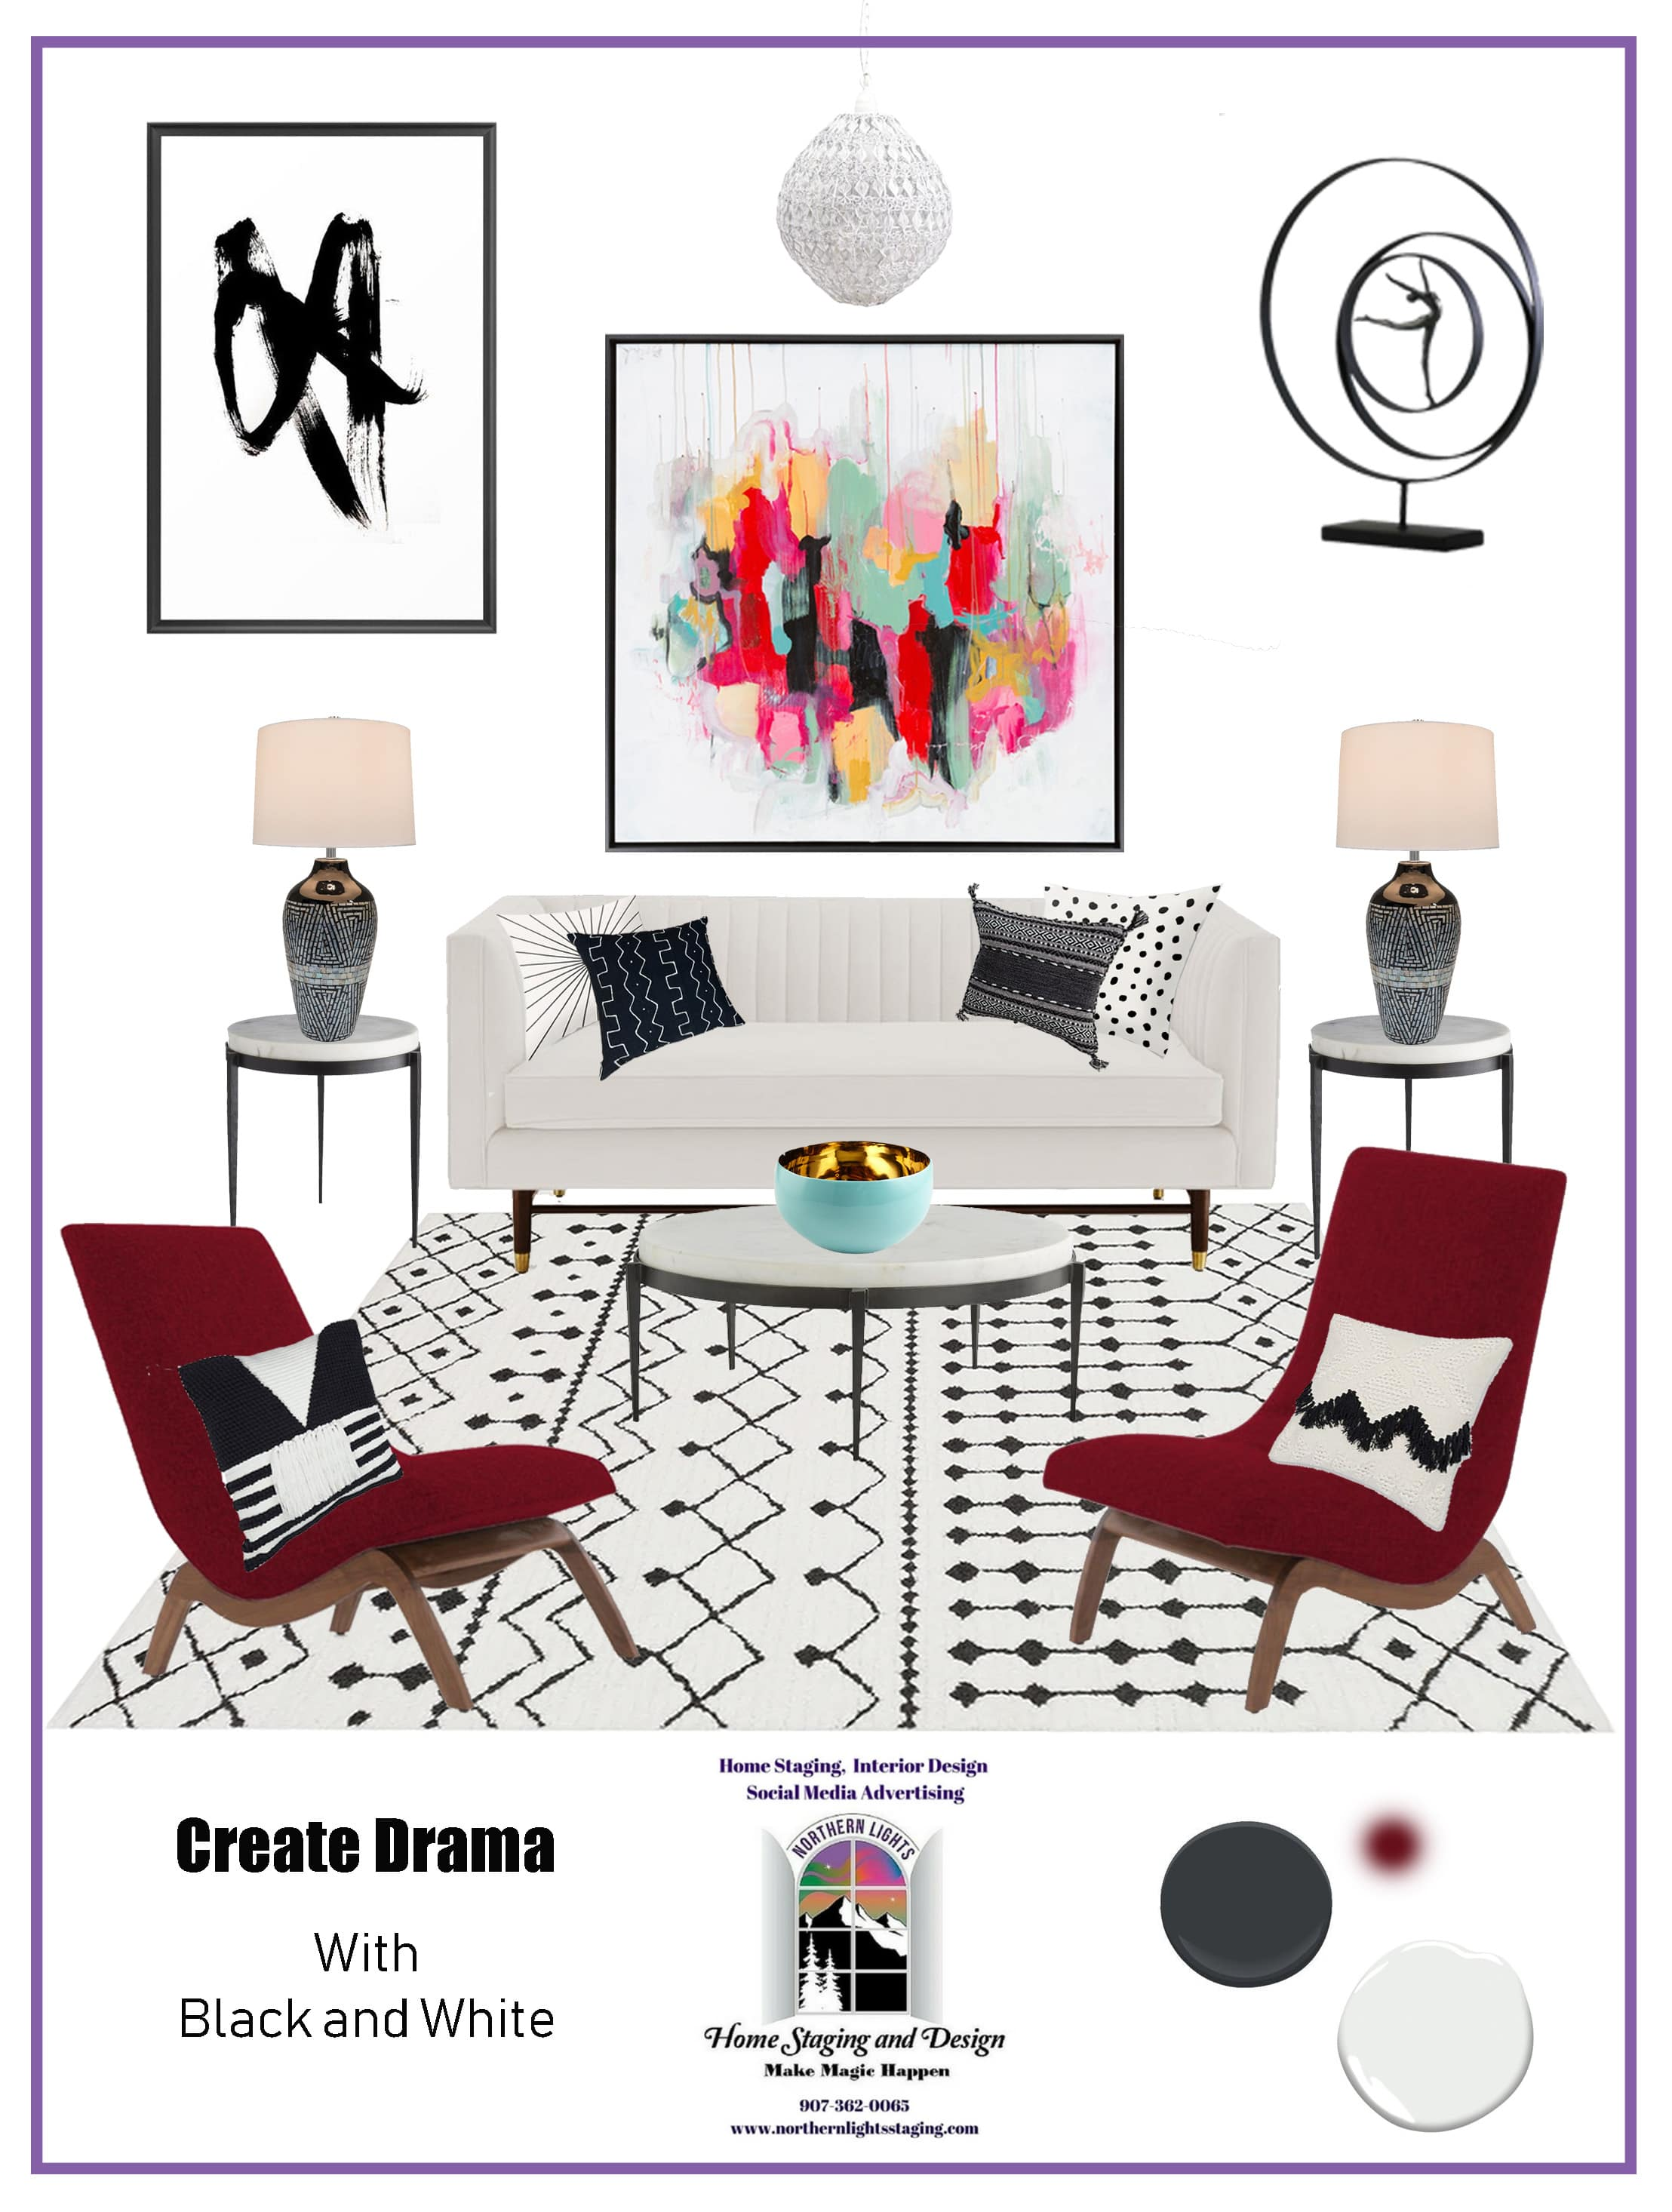 Get Dramatic with Black and White! Using black and white in your Interior Design to make the rest of our colors really pop and create drama. Edesign by Northern Lights Home Staging and Design. #color #colorconsulting #Interiordesign #edesign #bohemian #interiordecorating #paint #colors #homestyling #homedecor #homedesign #moderndecor #colorfuldecor #interiordecor #beautifulhomes #homeinspo #decorinspo #homeinspo #decorating #interiorstyle #homestyle #colorstrategy #colorconsultant #interiorpaintcolors #exteriorpaintcolors #paintingtips #colortips #interiorcolor #colorfuldecor #bohemian #global #blackandwhite #99664 #alaska # #99501 #anchorage #KenaiPeninsula